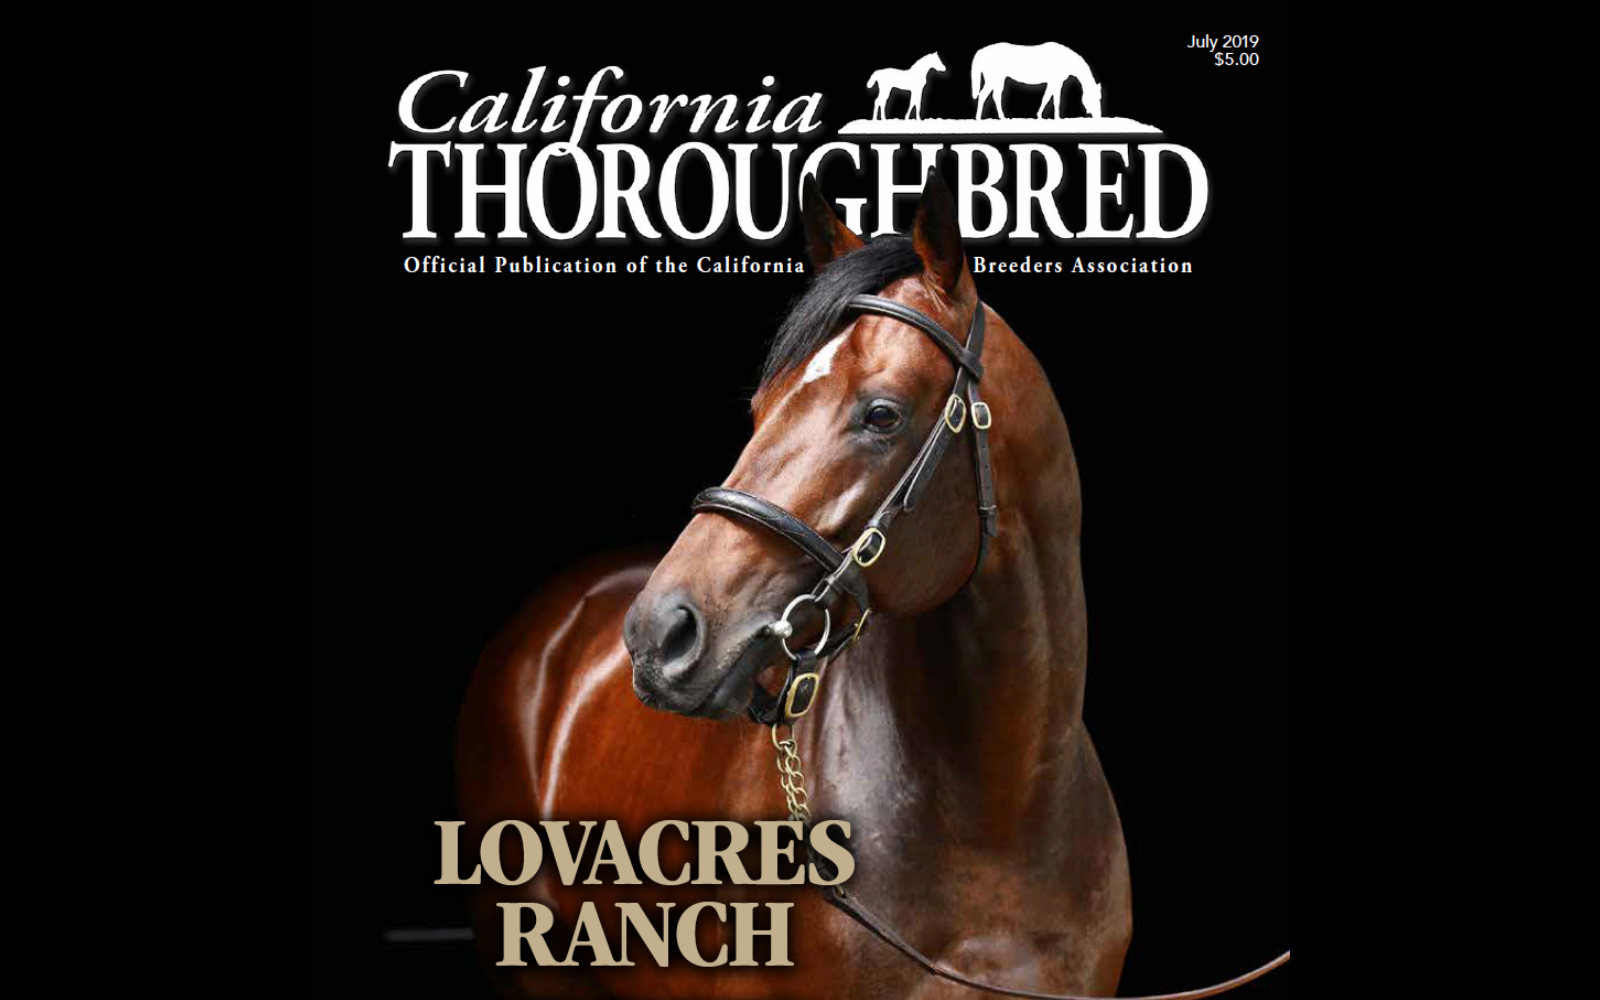 LOVACRES RANCH CALIFORNIA STALLION STAY THIRSTY IN THE LIMELIGHT July 2019